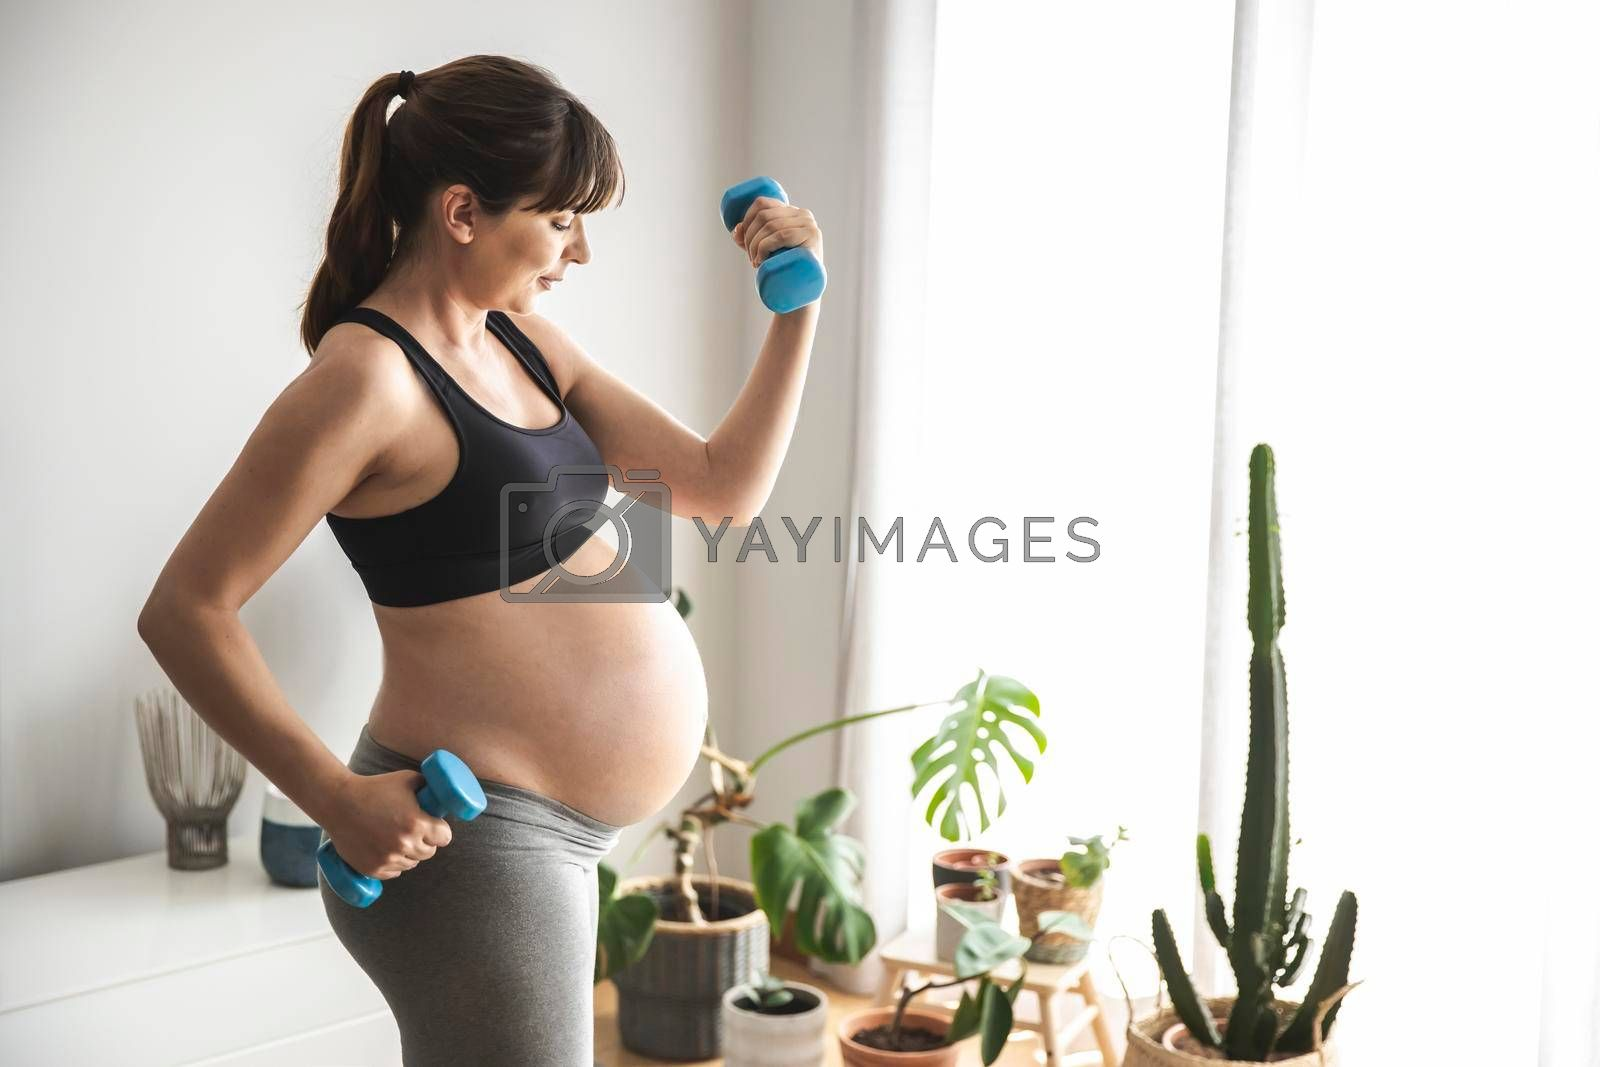 Royalty free image of Pregnant woman doing exercises by Iko